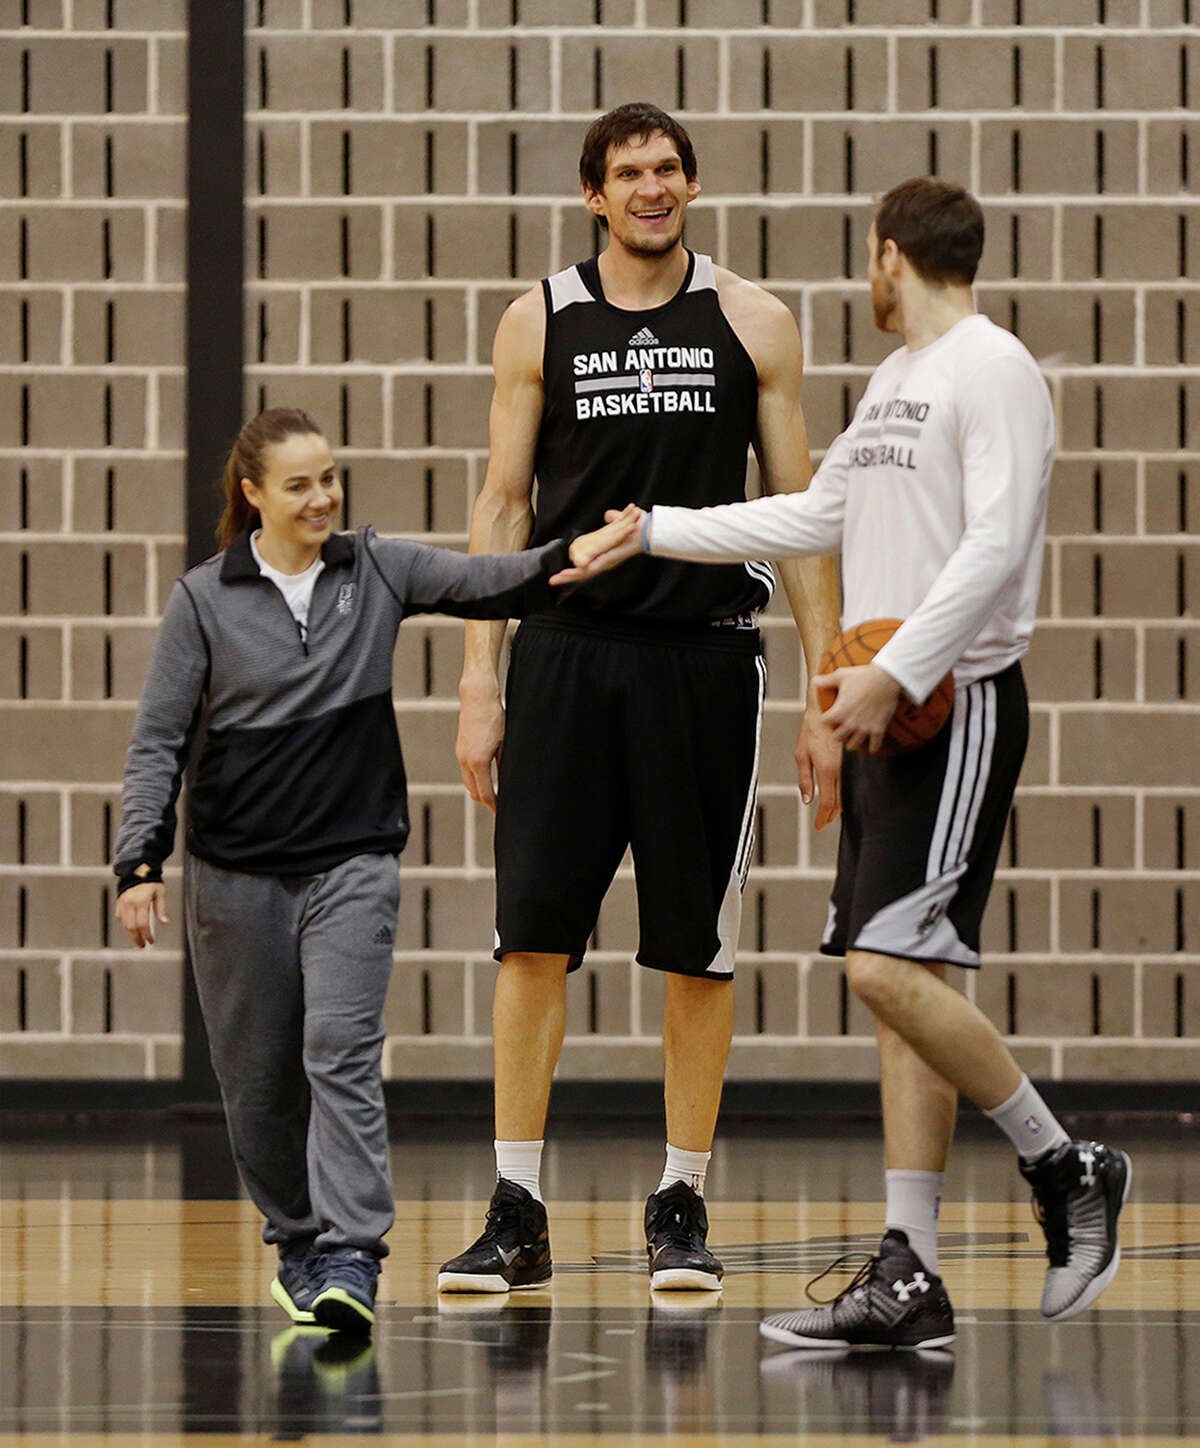 2. A man of massive proportions Marjanovic has enormous feet - size 19 shoe - and hands. His standing reach of 9-7 eclipses those of Yao Ming, Wilt Chamberlain and O'Neal, and his 7-8 wingspan would have placed him third in the NBA last season behind Utah's Rudy Gobert and New Orleans' Alexis Ajinca. Marjanovic is so tall that members of the Spurs' developmental squad that work with him have to hold up oars to simulate shot blockers